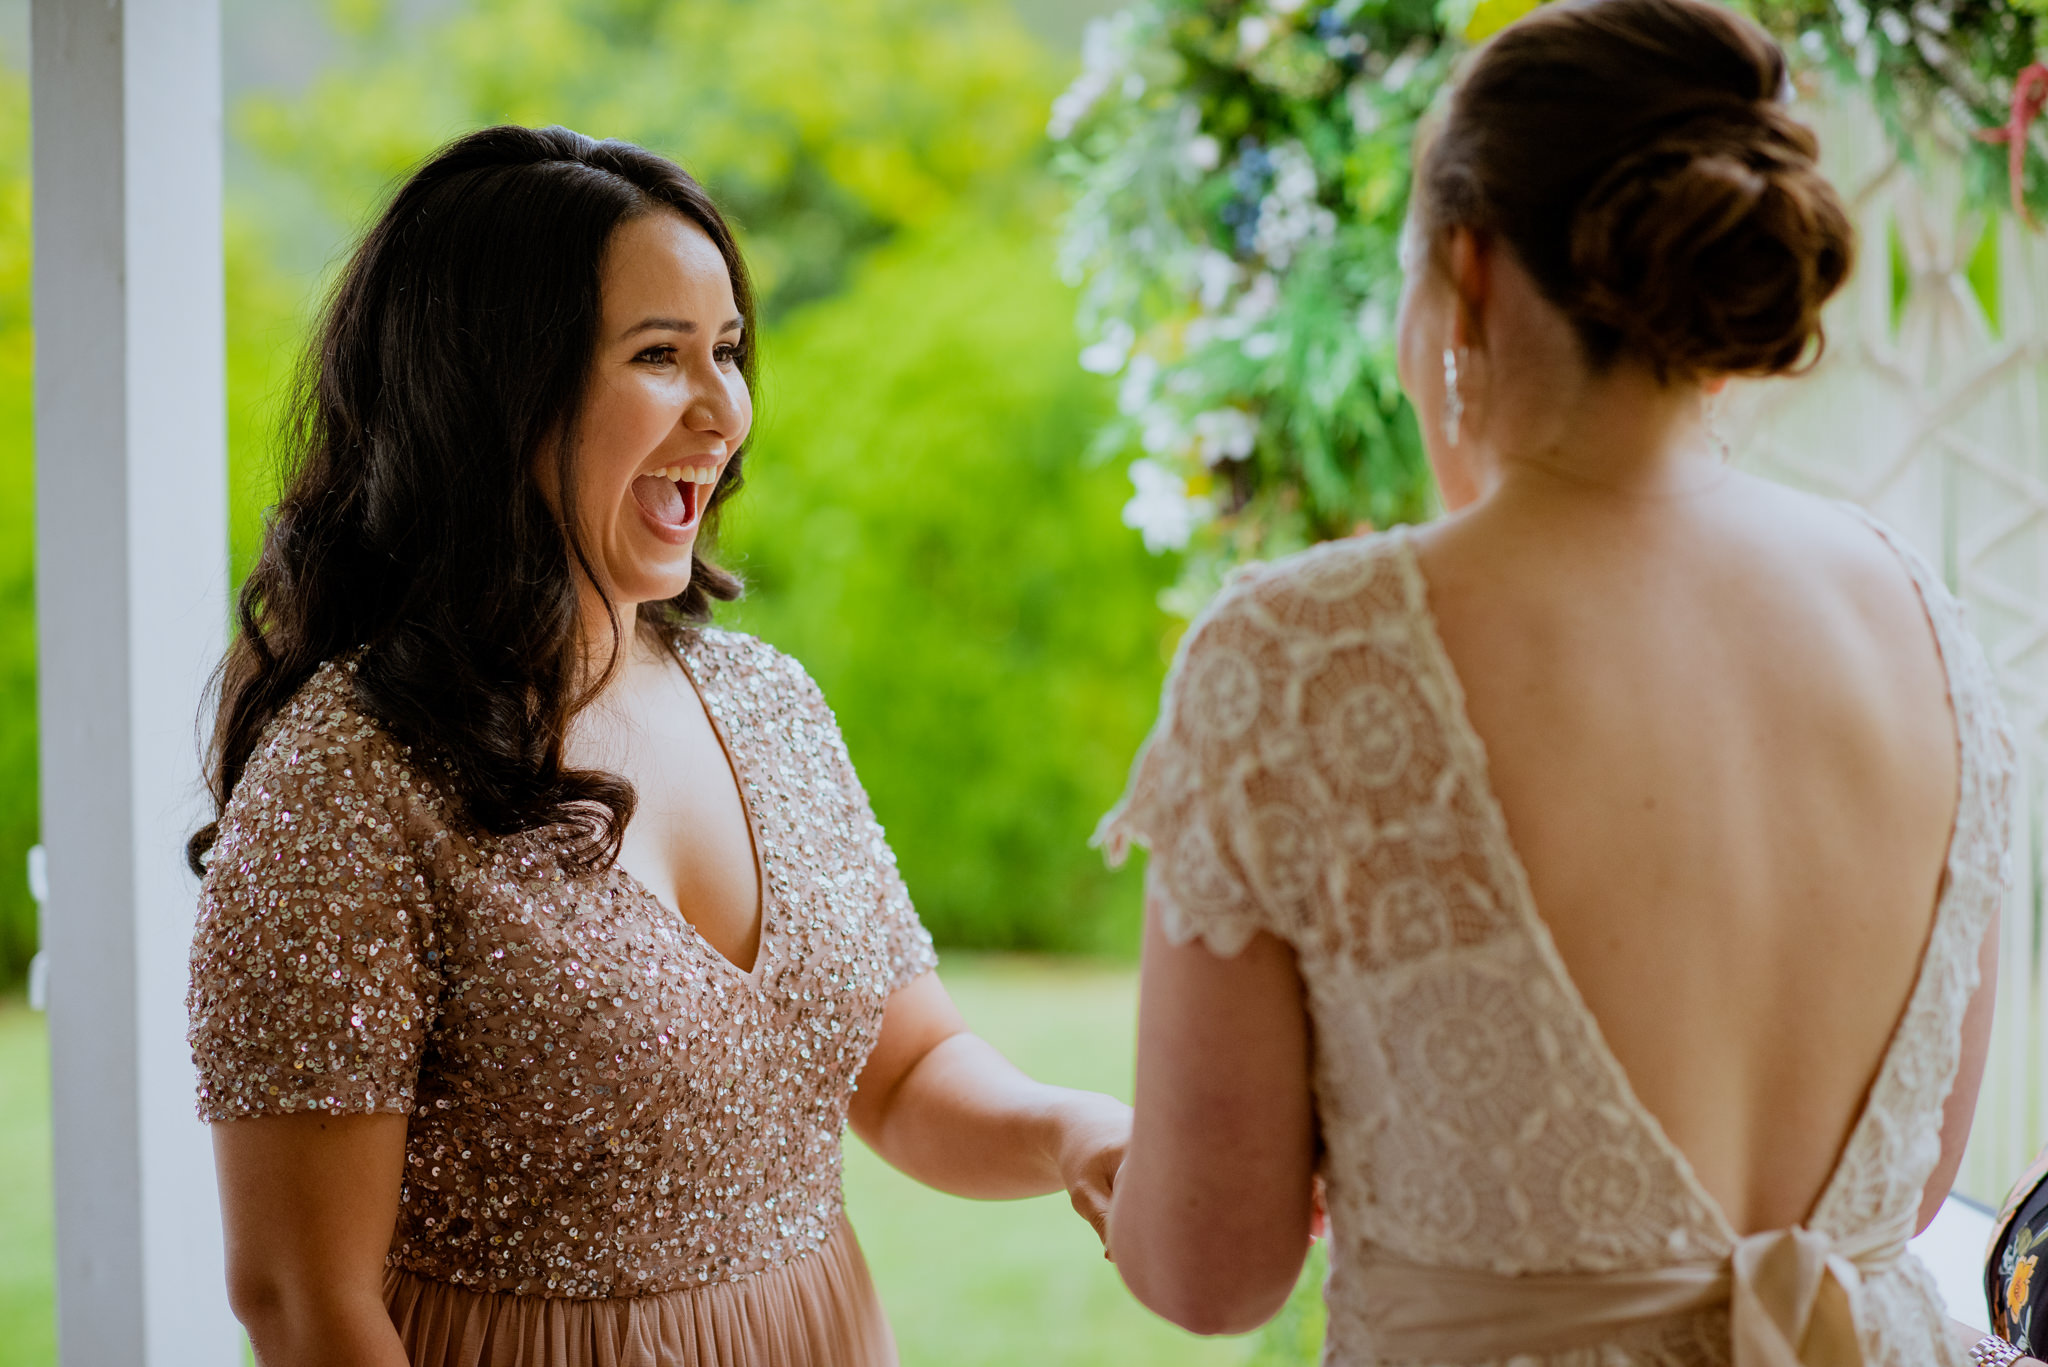 Happy bride laughs as her partner places ring on hand